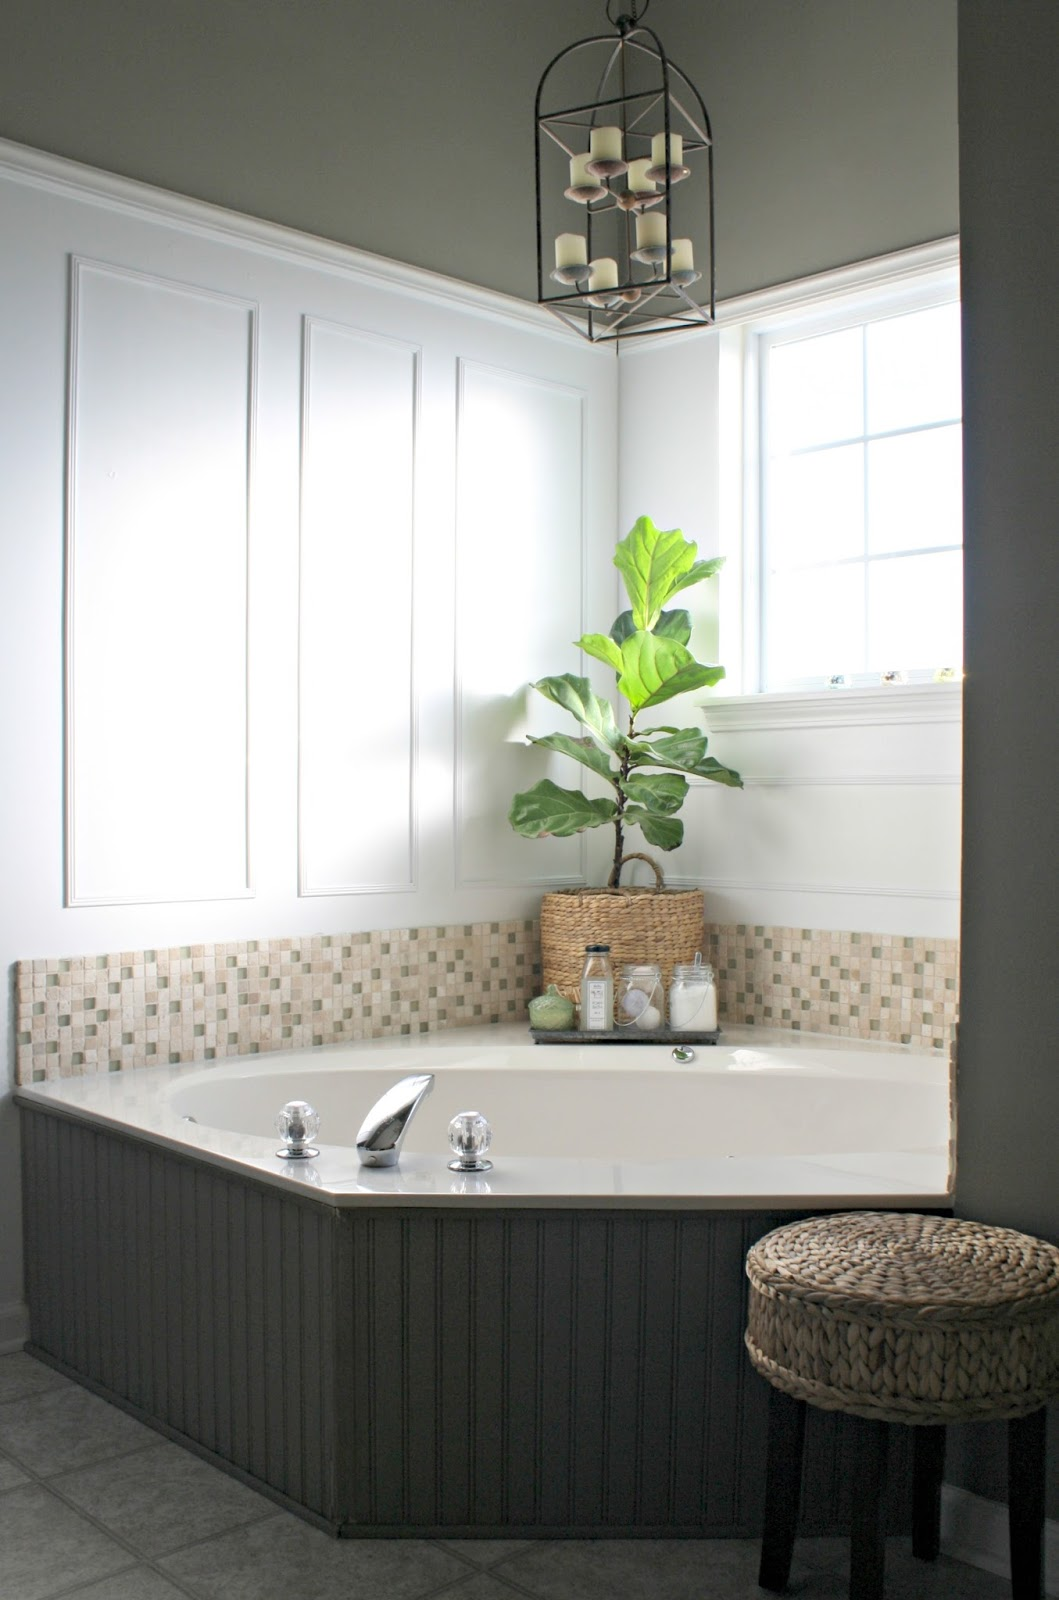 master bathroom reno plans from thrifty decor chick. Black Bedroom Furniture Sets. Home Design Ideas